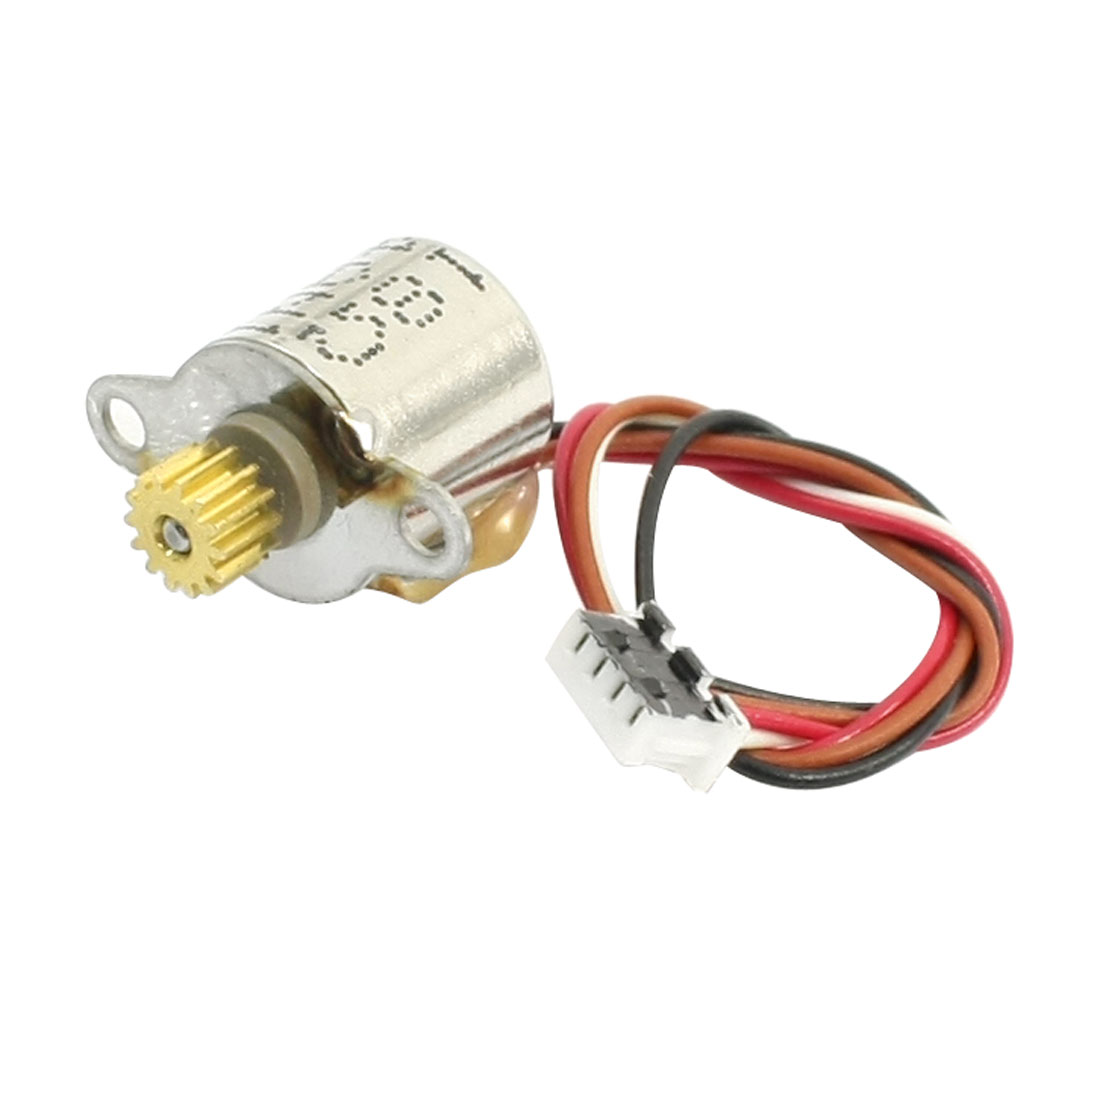 Replacement-Four-Wires-Gear-Stepper-Step-Motor-DC-6V-for-Digital-Camera